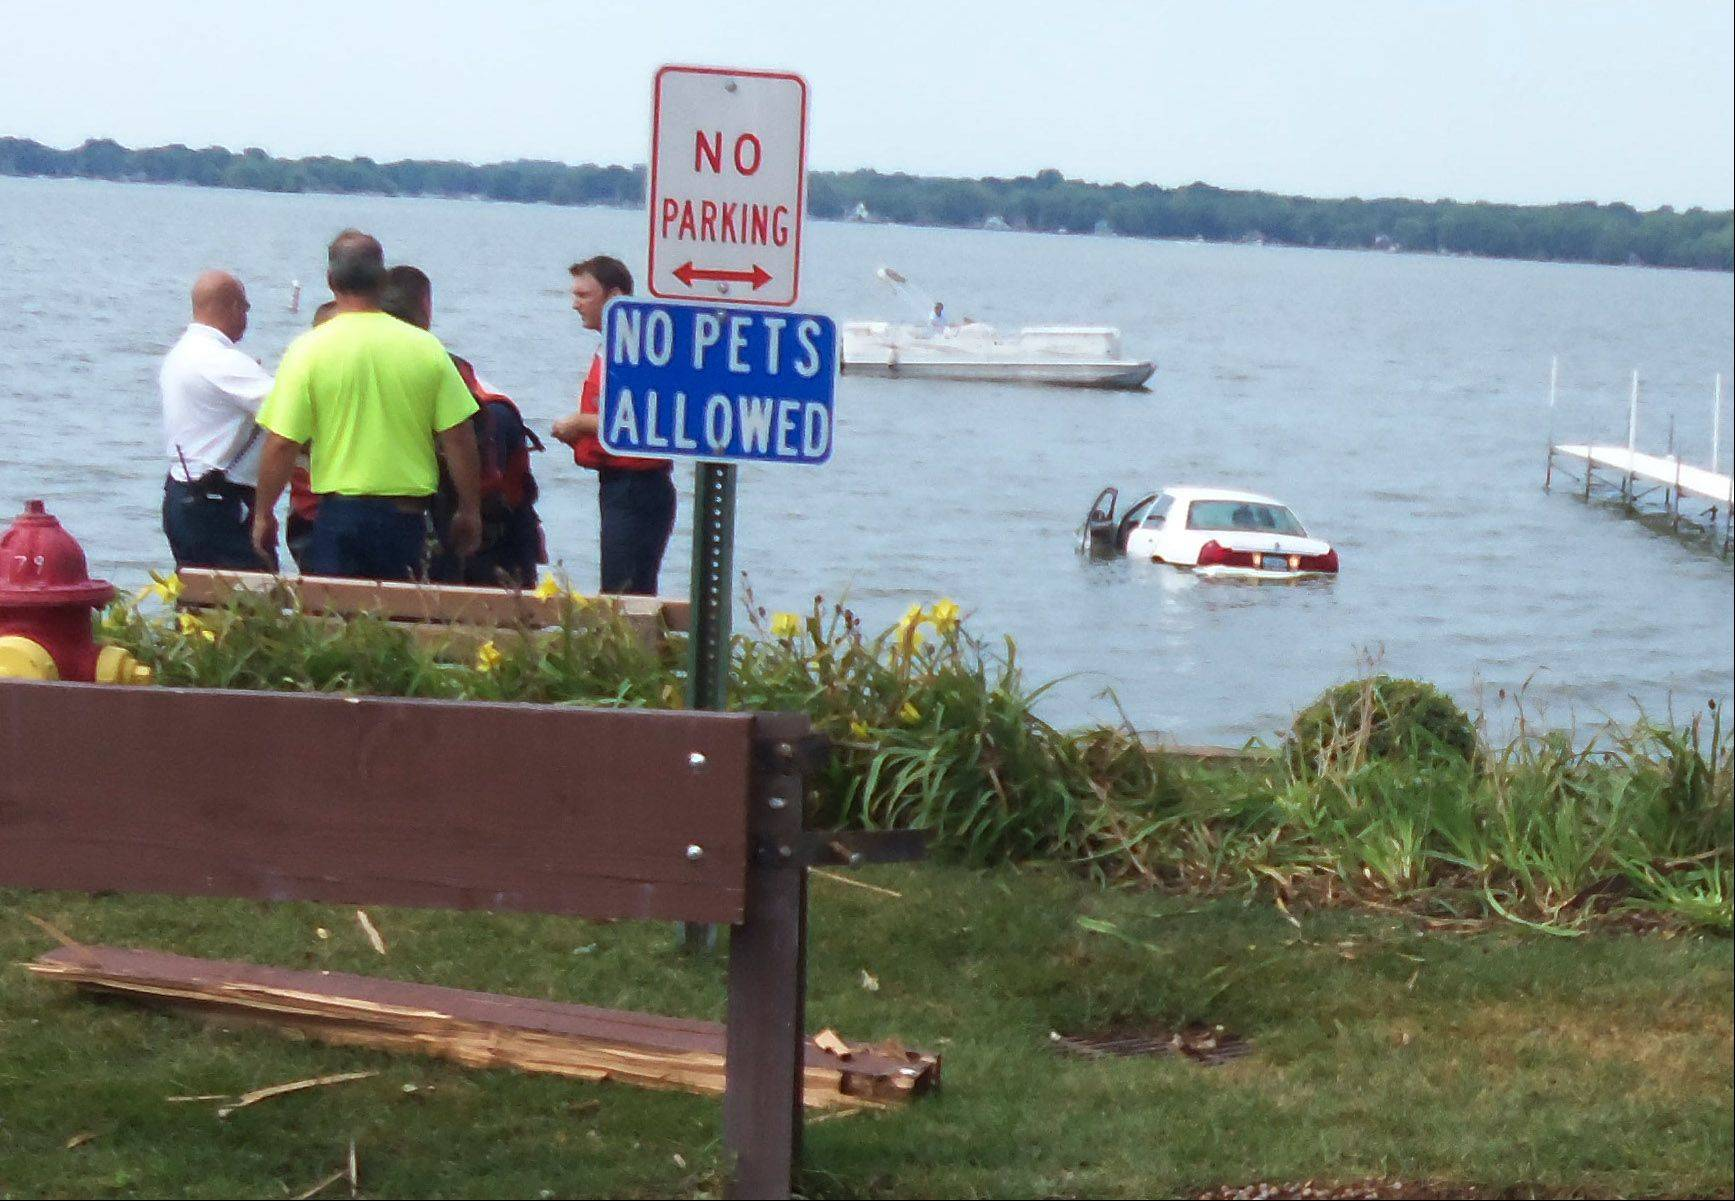 A 77-year-old Ingleside woman was ticketed but escaped injury after she drove her vehicle off the end of Grand Avenue into Pistakee Lake.